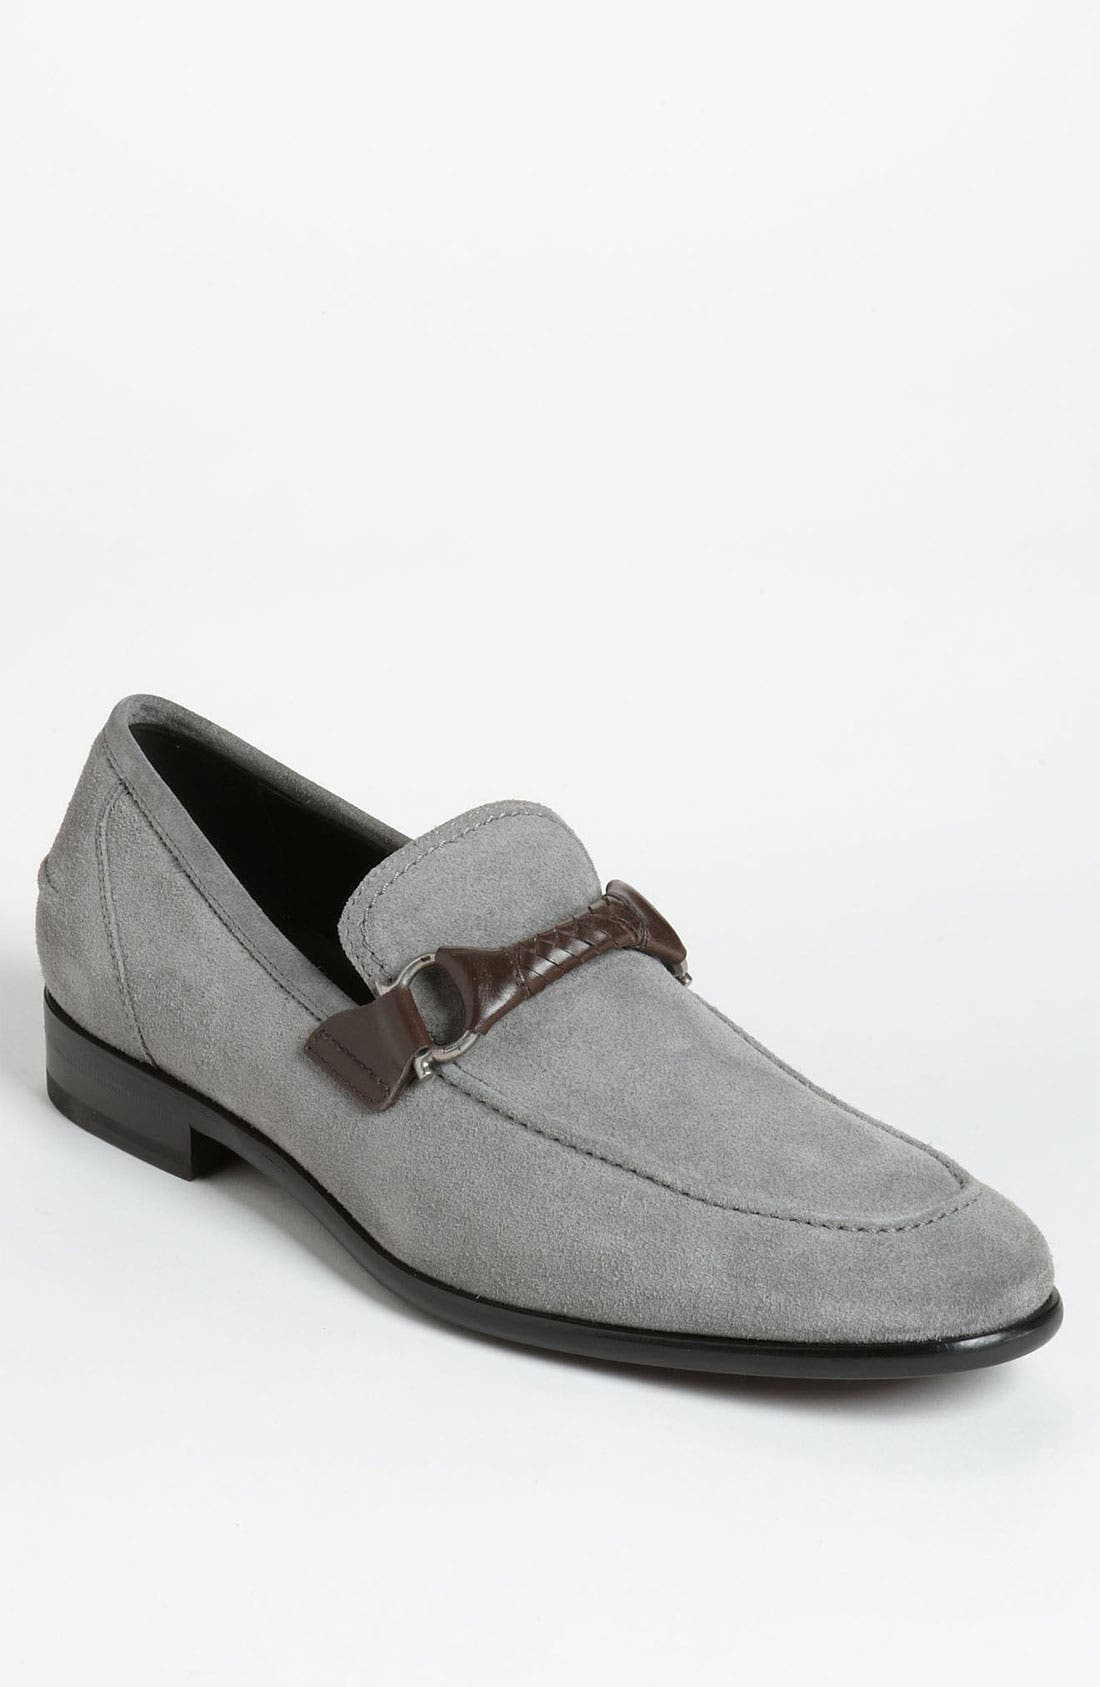 Main Image - Salvatore Ferragamo 'Twist 2' Bit Loafer